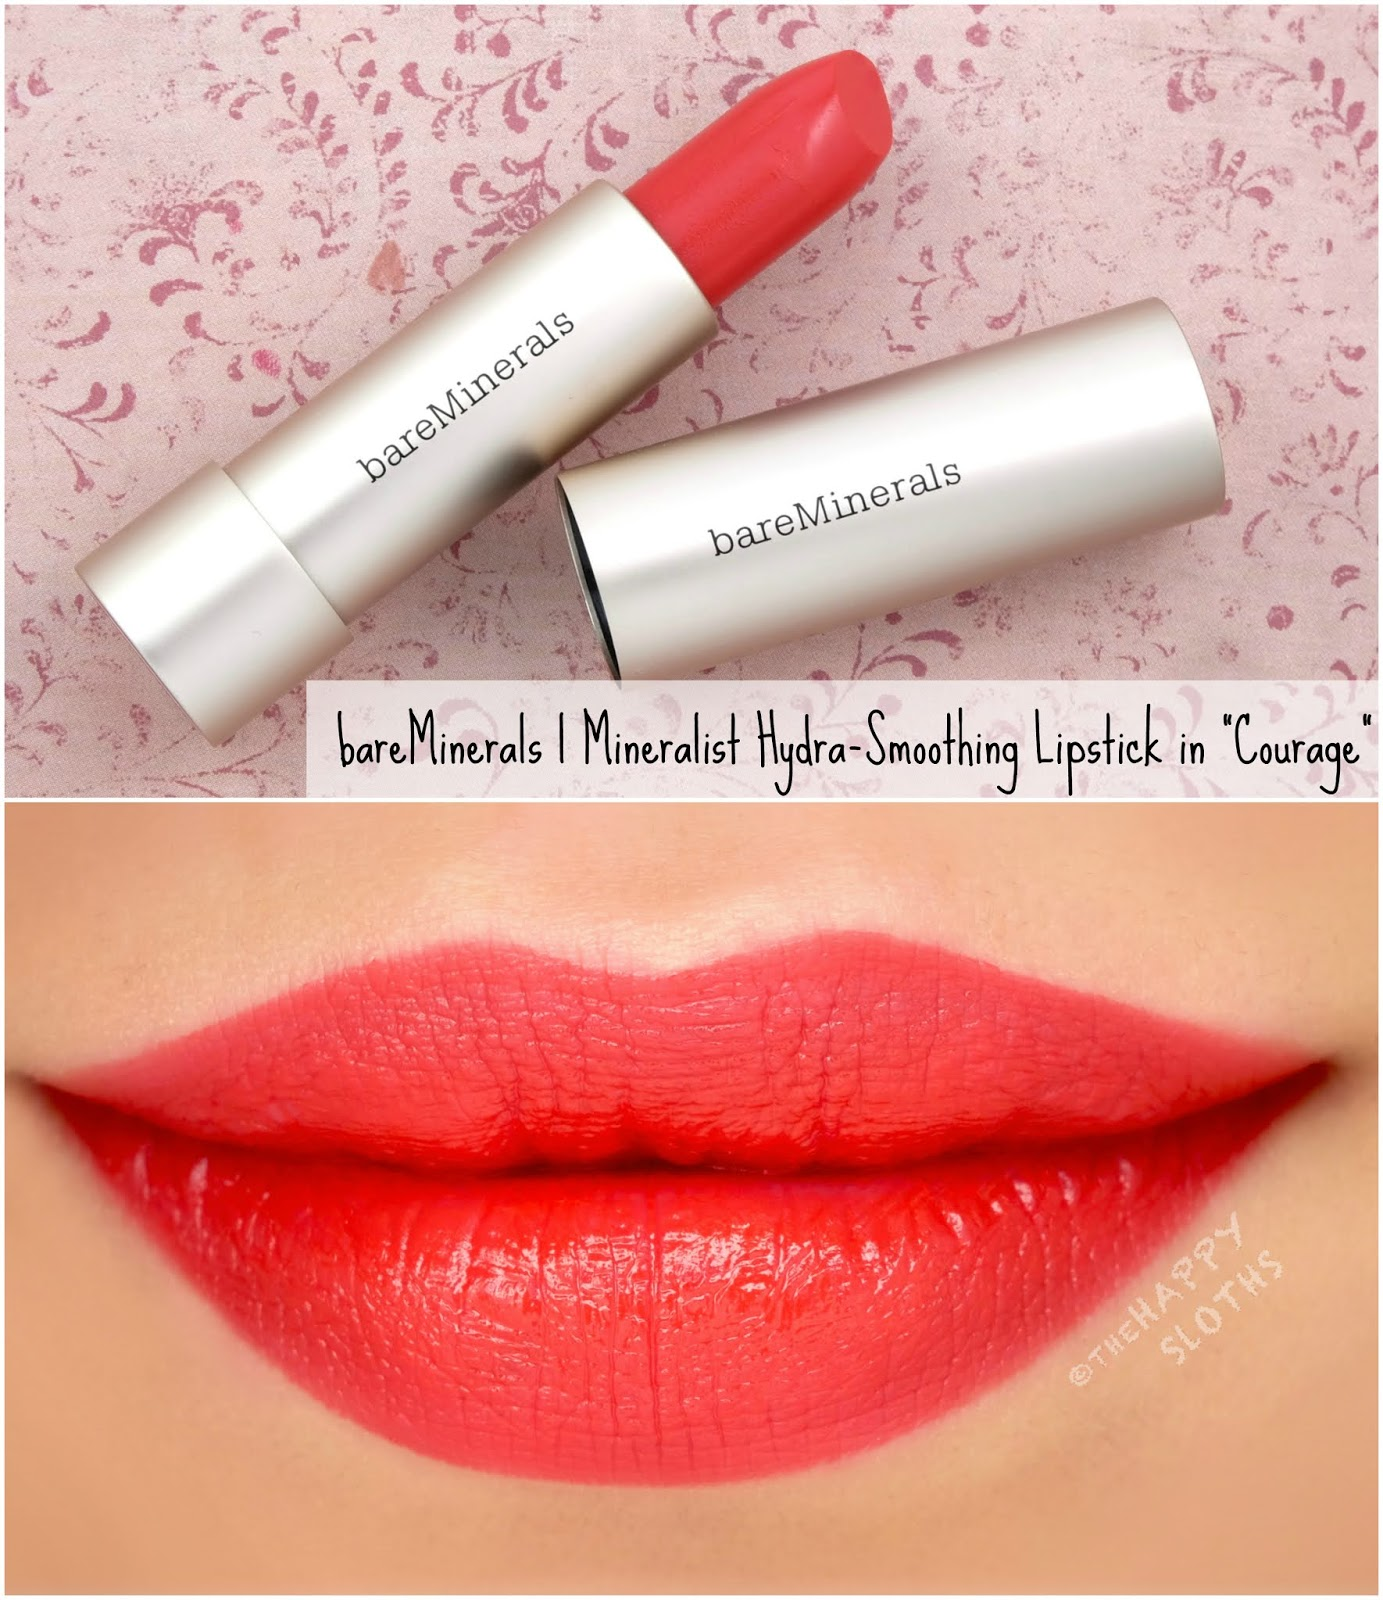 "bareMinerals | Mineralist Hydra-Smoothing Lipstick in ""Courage"": Review and Swatches"